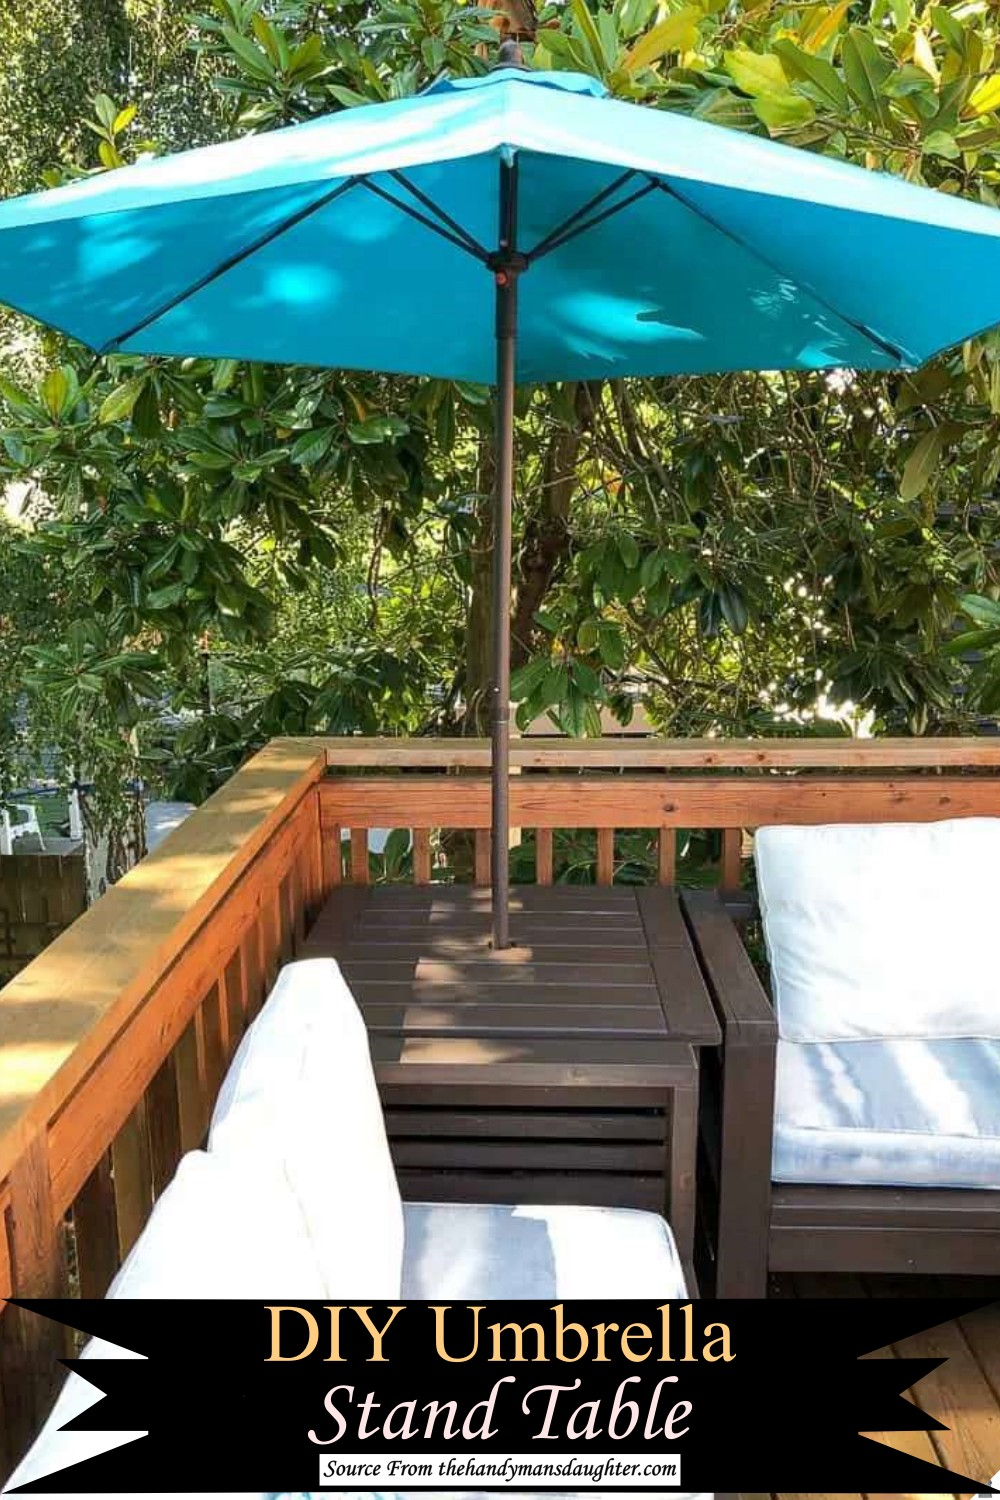 Decent Sunshade Stand Table for your Balcony